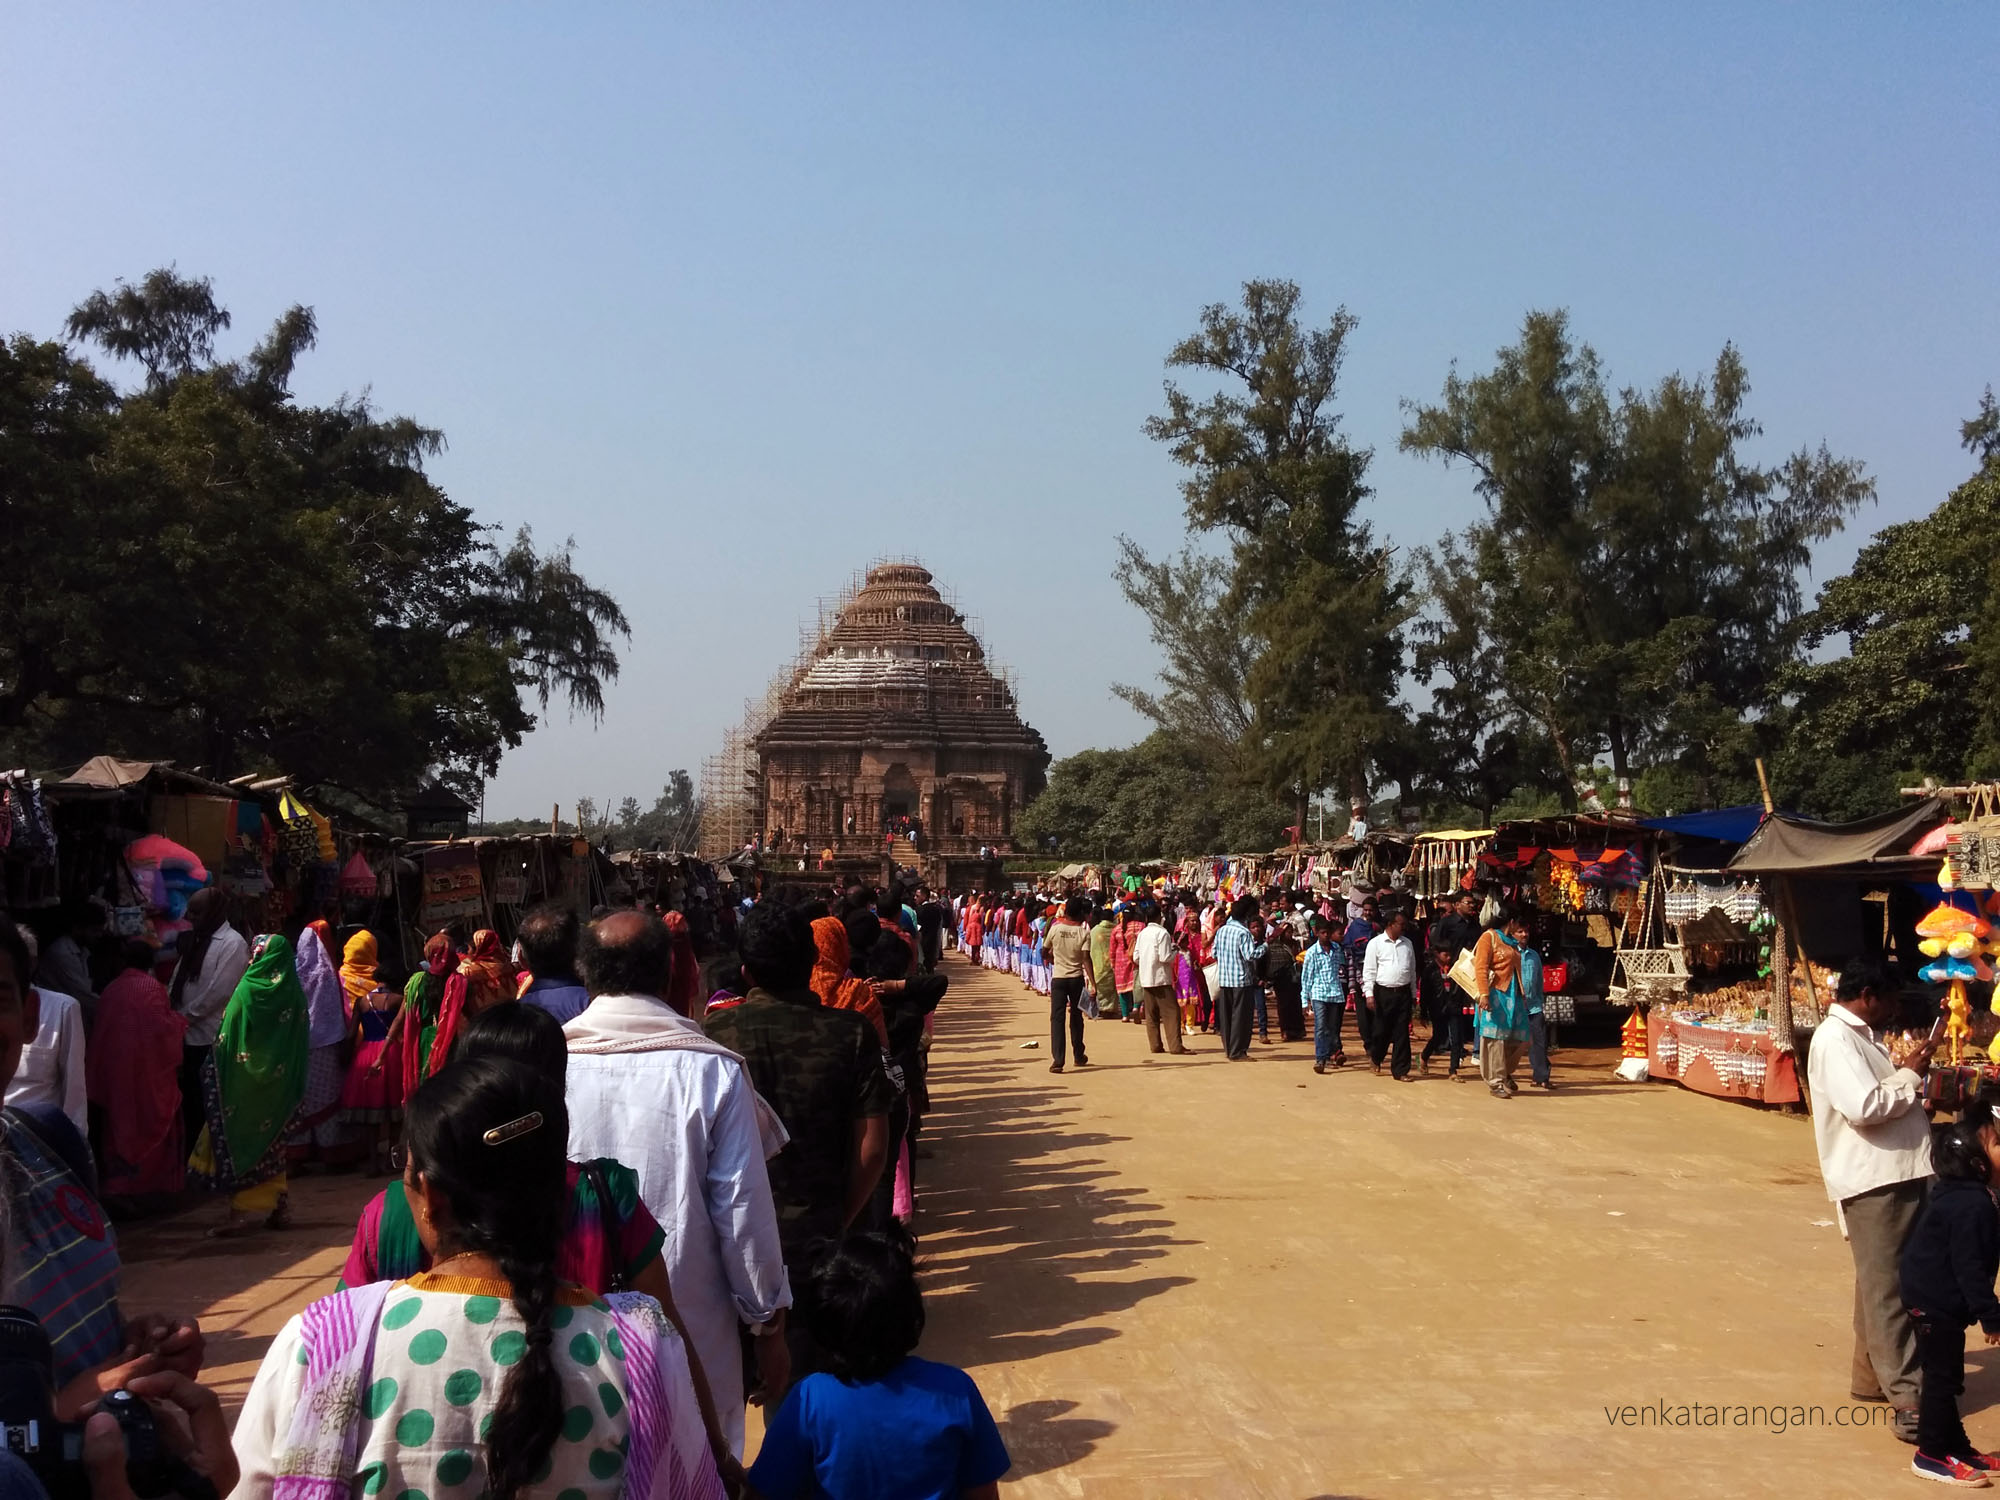 Konark Sun Temple - a UNESCO World Heritage Site